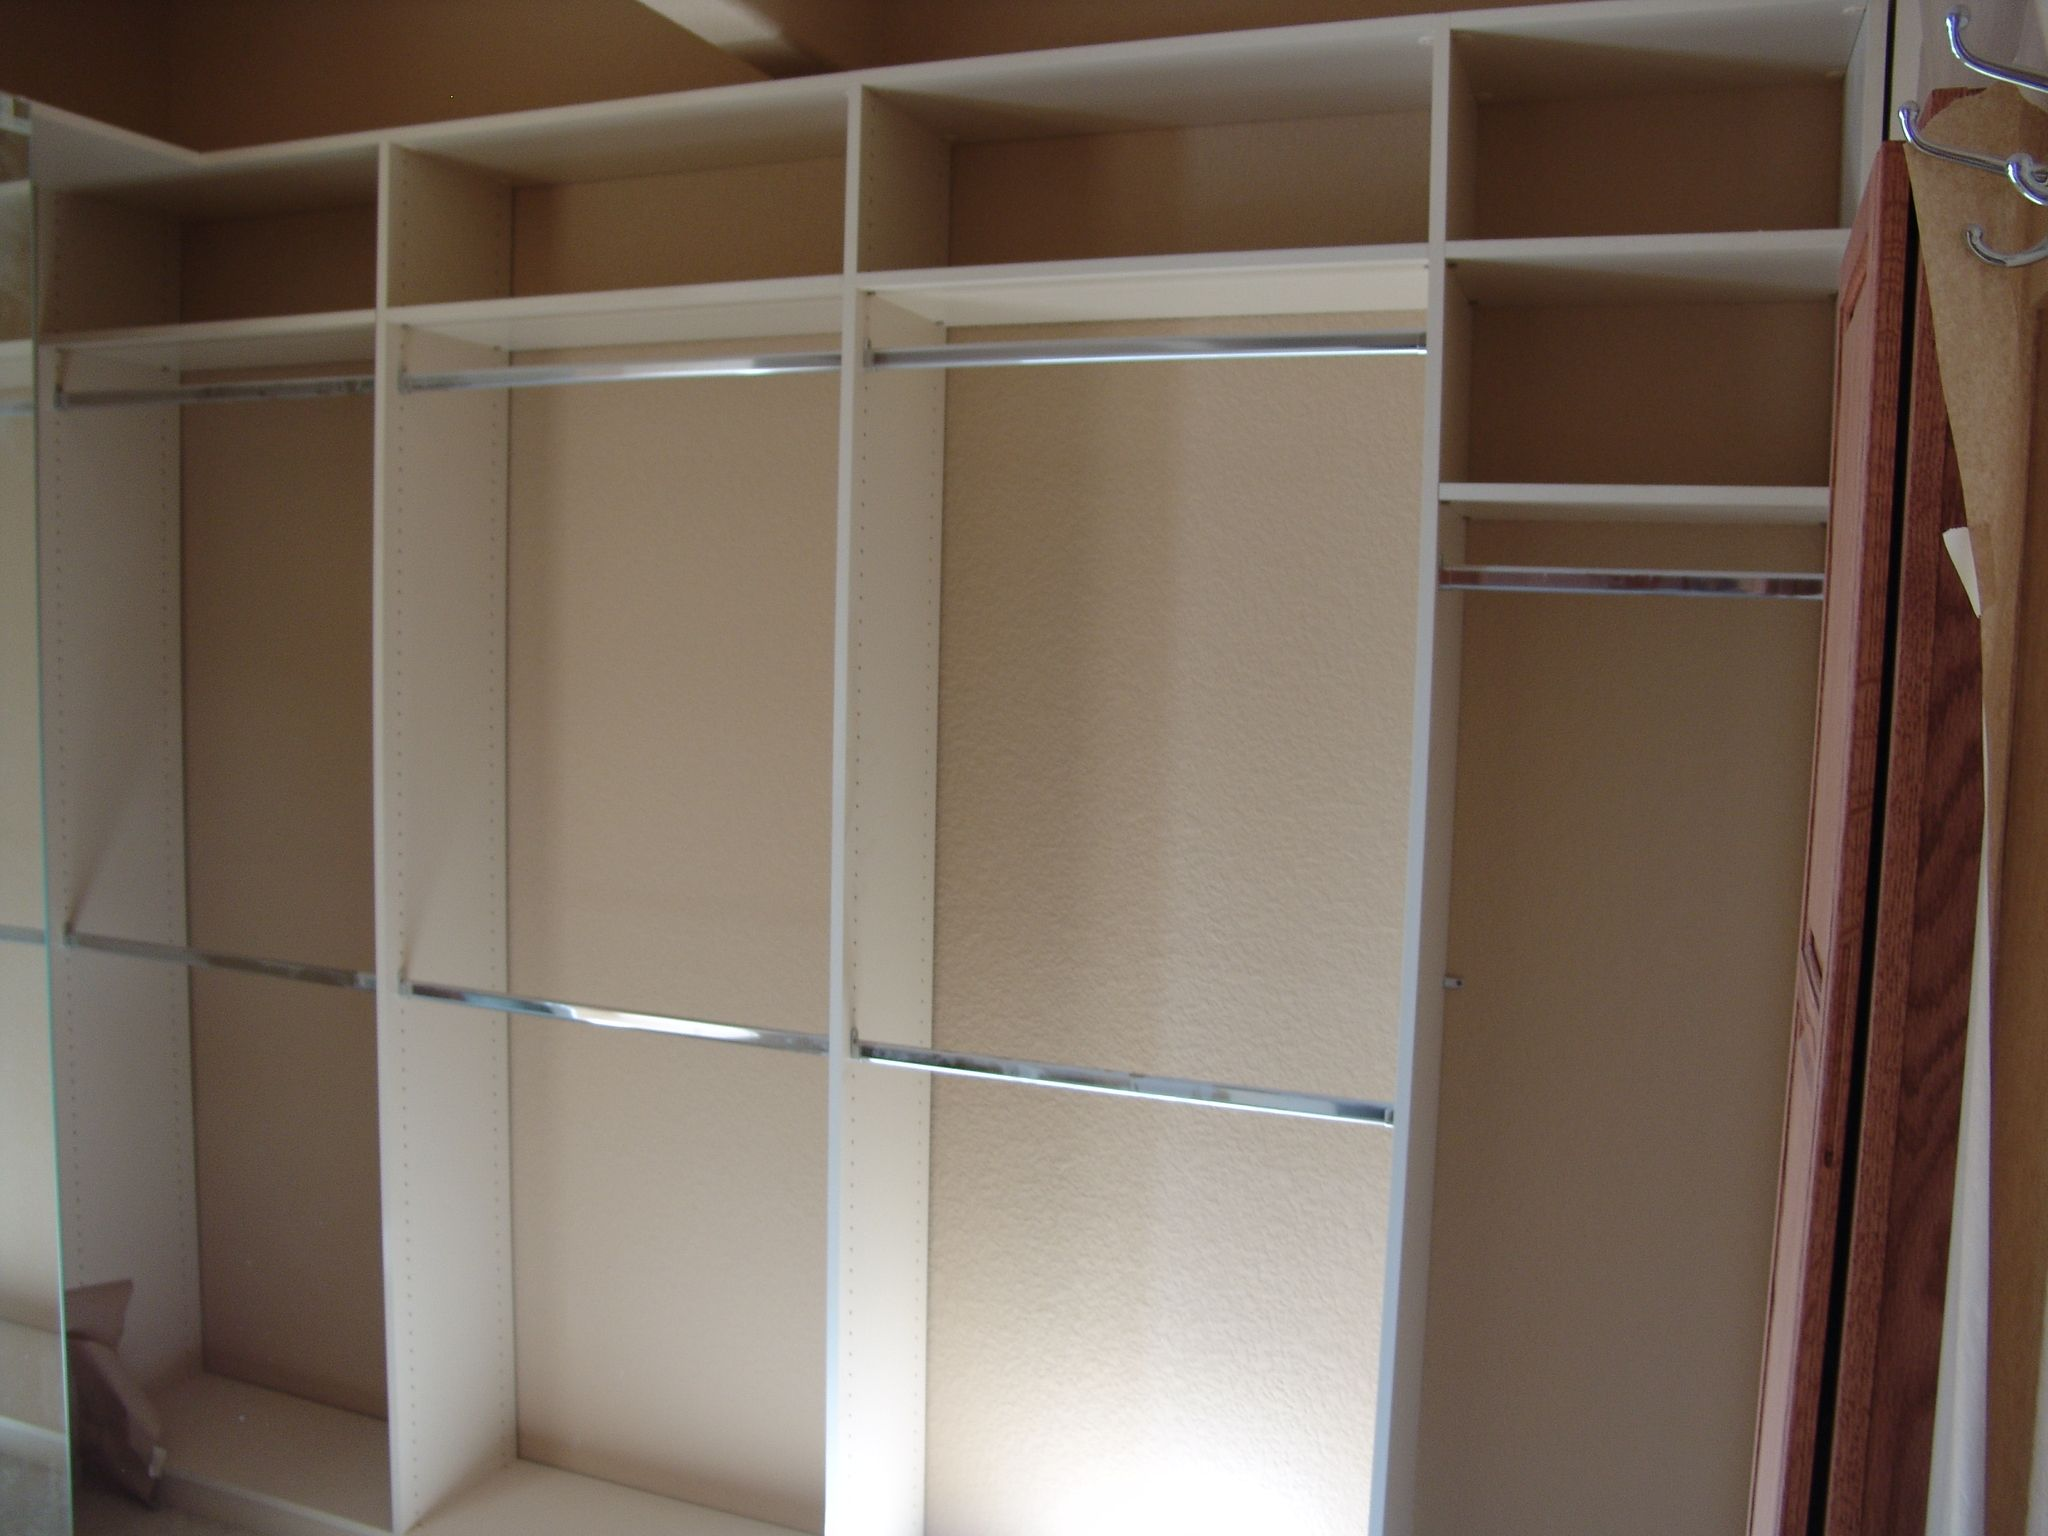 Furniture Pleasing Schemes Of Wardrobe Closet Plans With White Wooden Having Some Metal Clothing Hook Stunning Look Cl